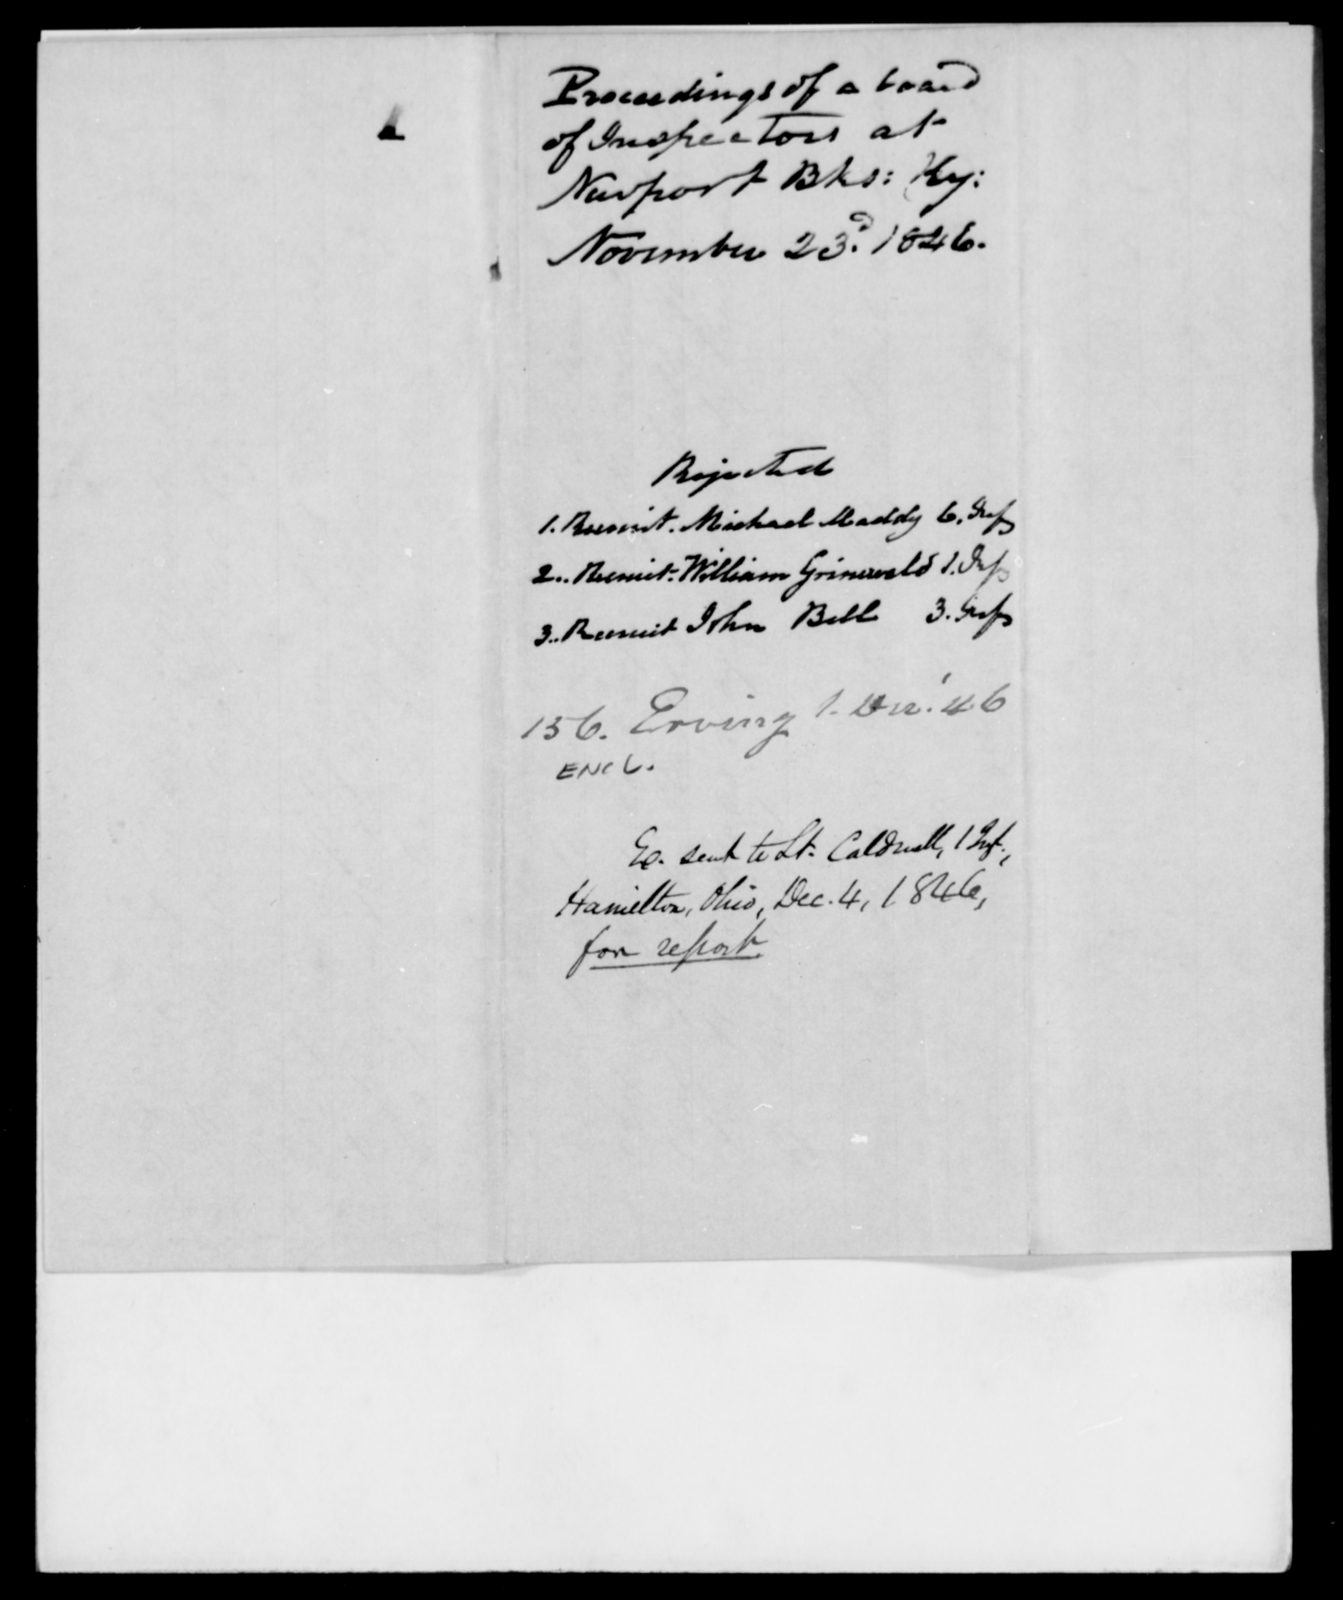 Erving, J - State: Kentucky - Year: 1846 - File Number: E156